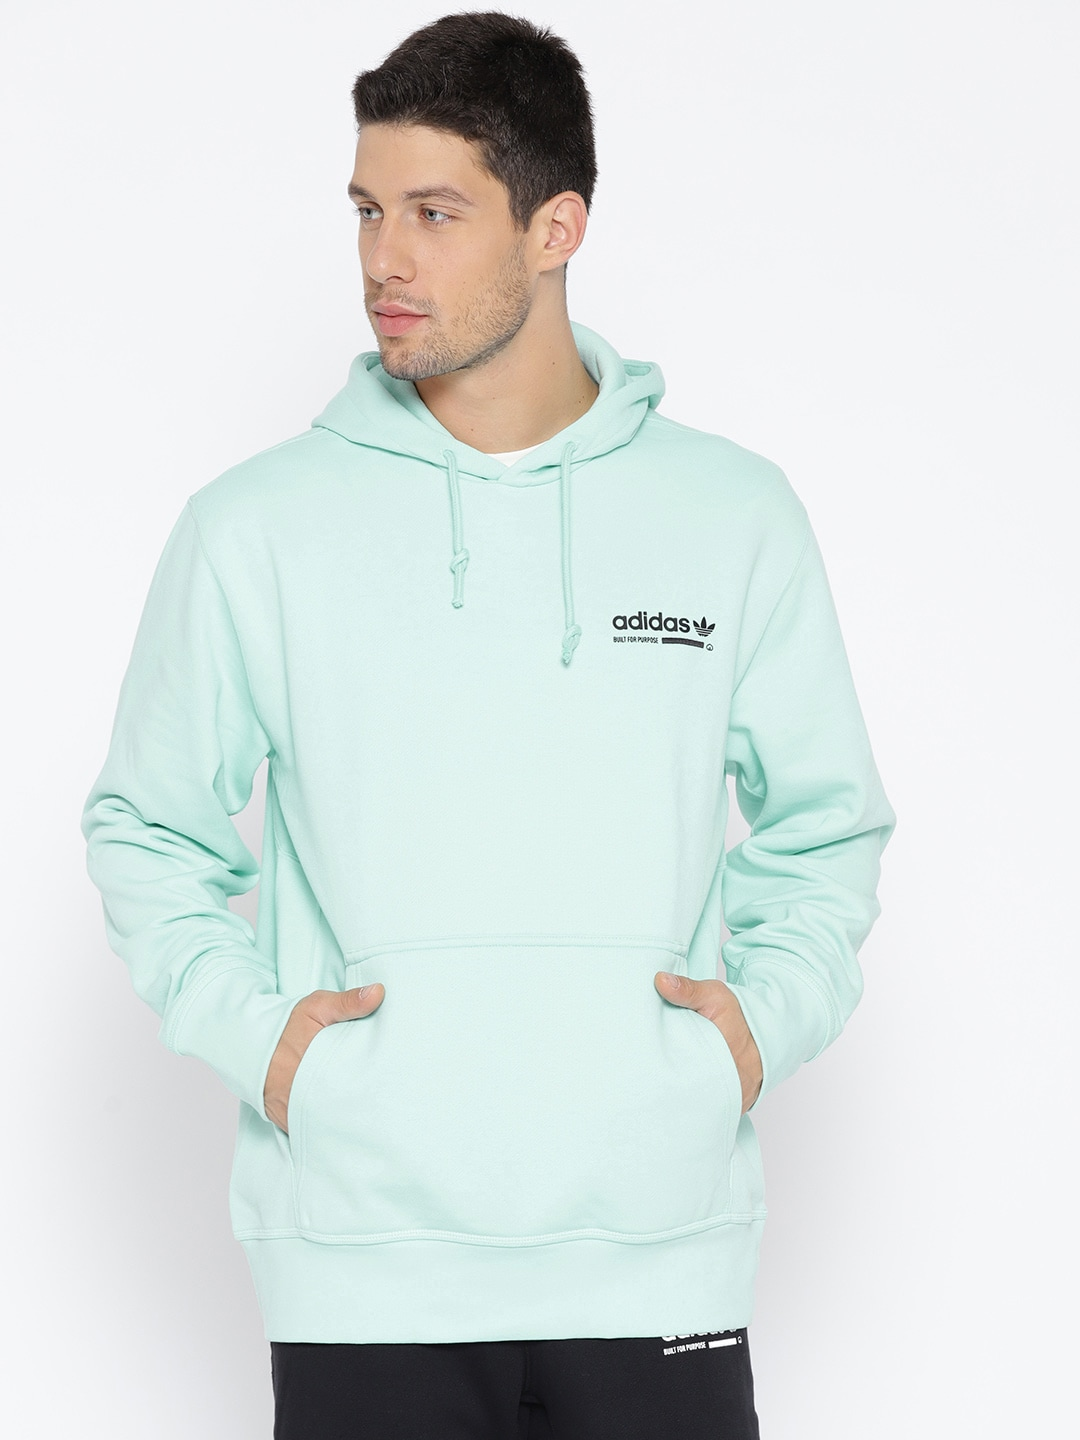 Adidas Originals Sweatshirts - Buy Adidas Originals Sweatshirts Online in  India 41908a4b3e14